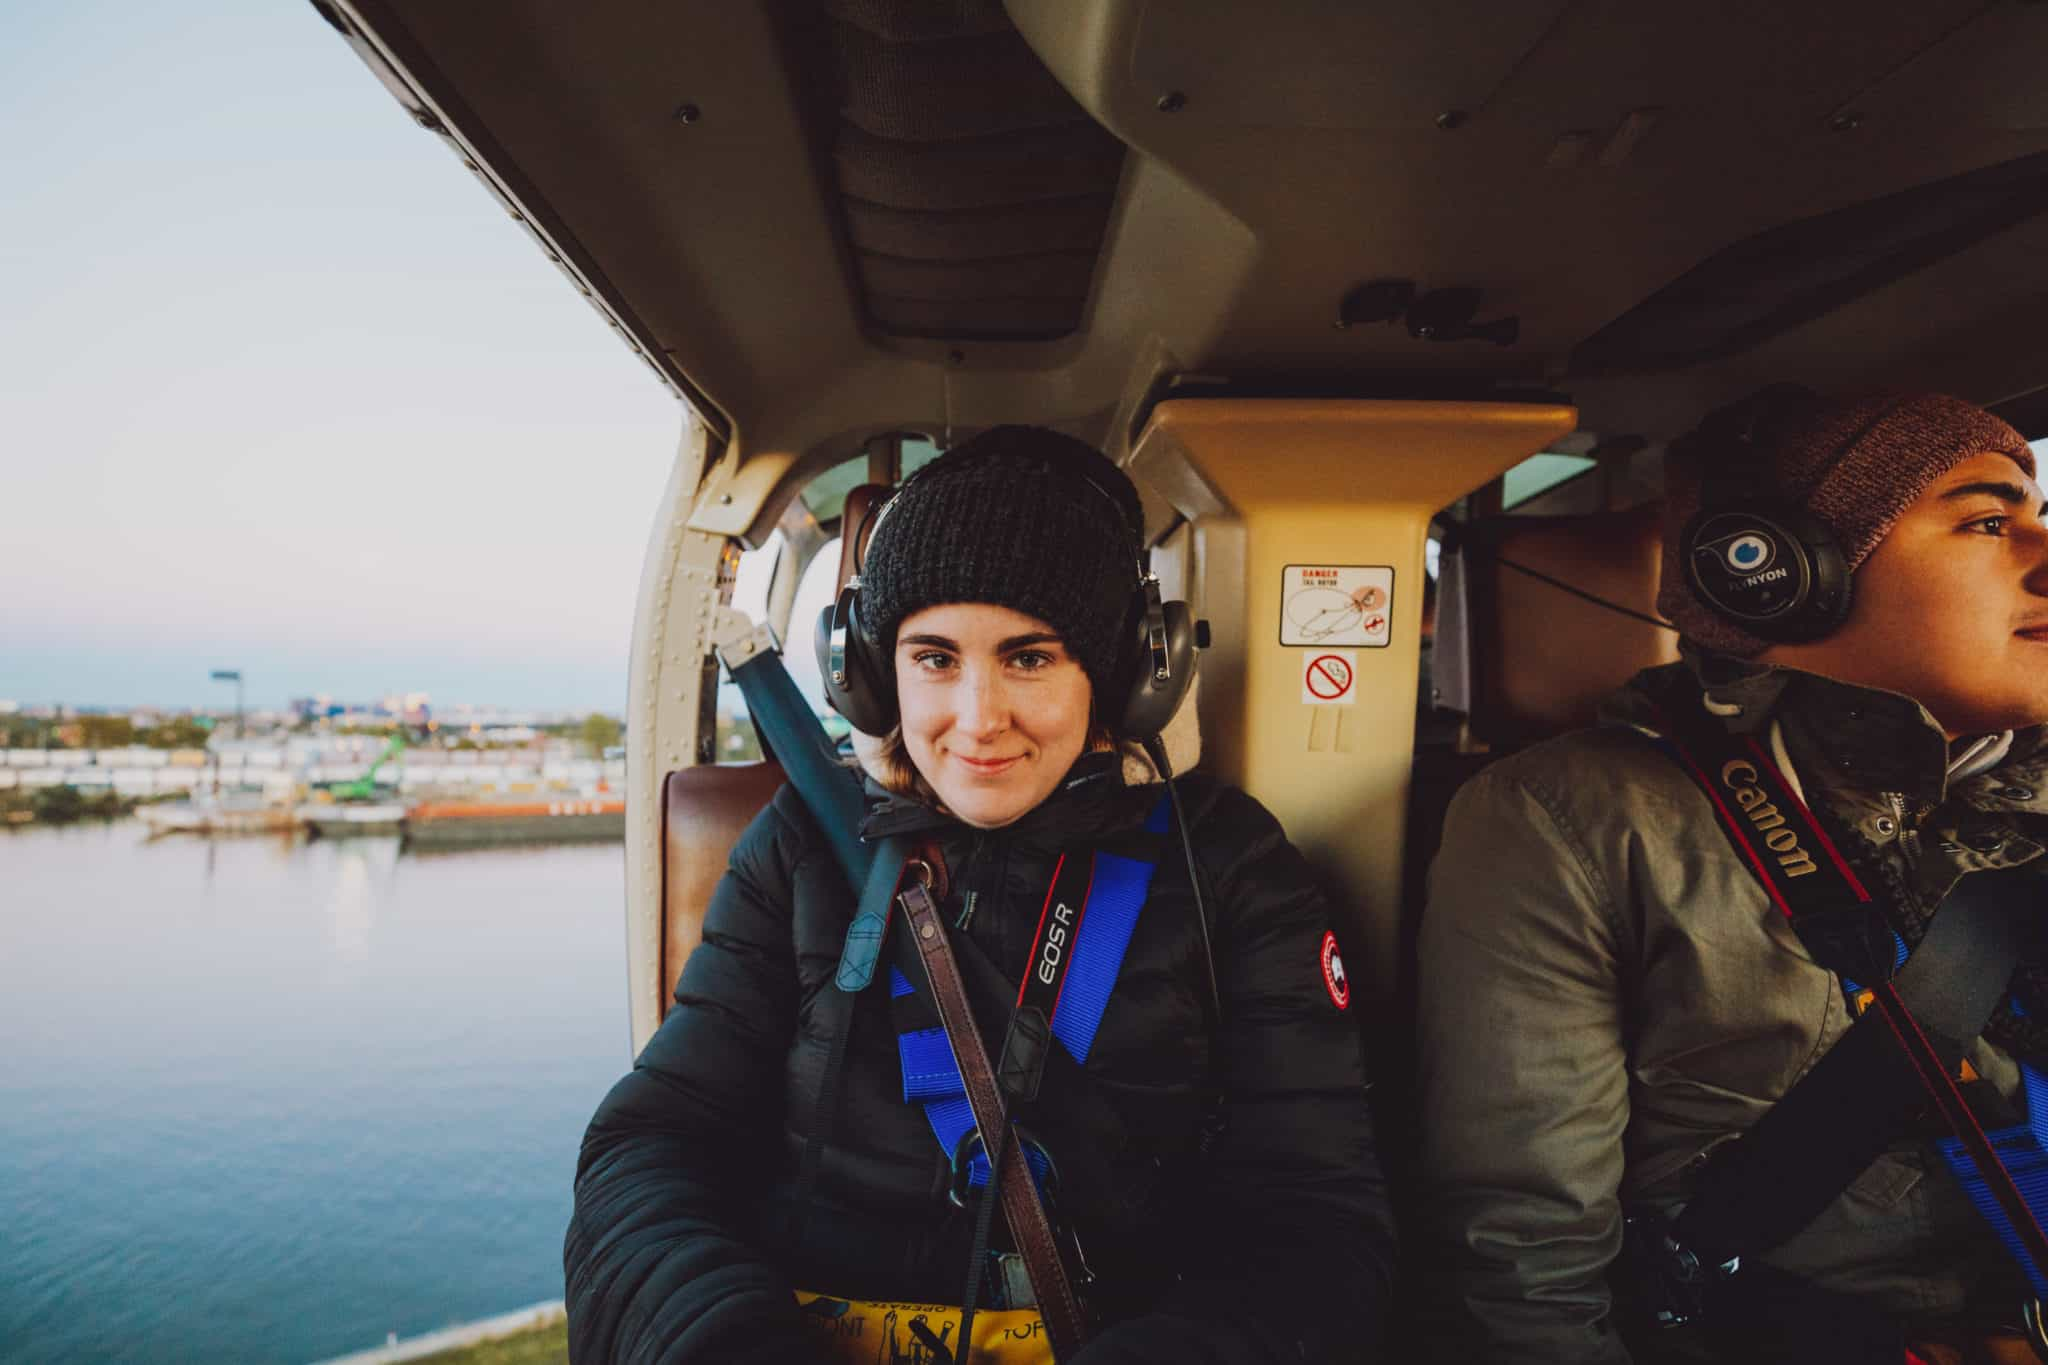 Helicopter Safety Gear Emily Mandagie